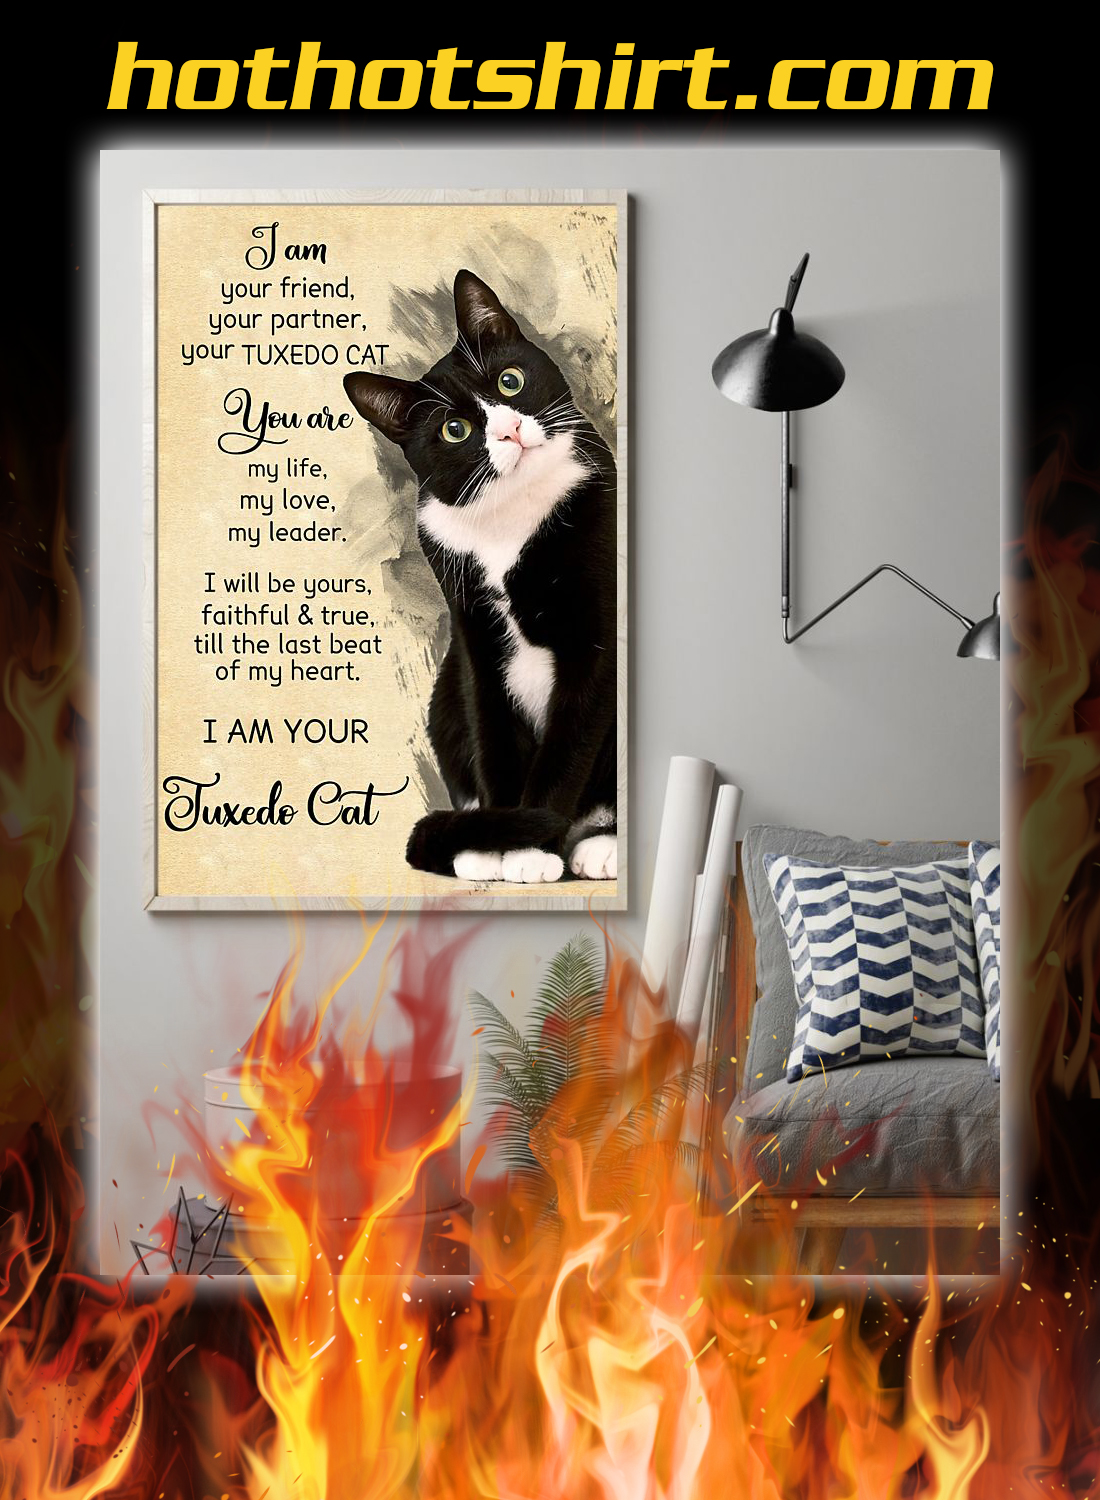 I am your friend your partner your tuxedo cat poster 1